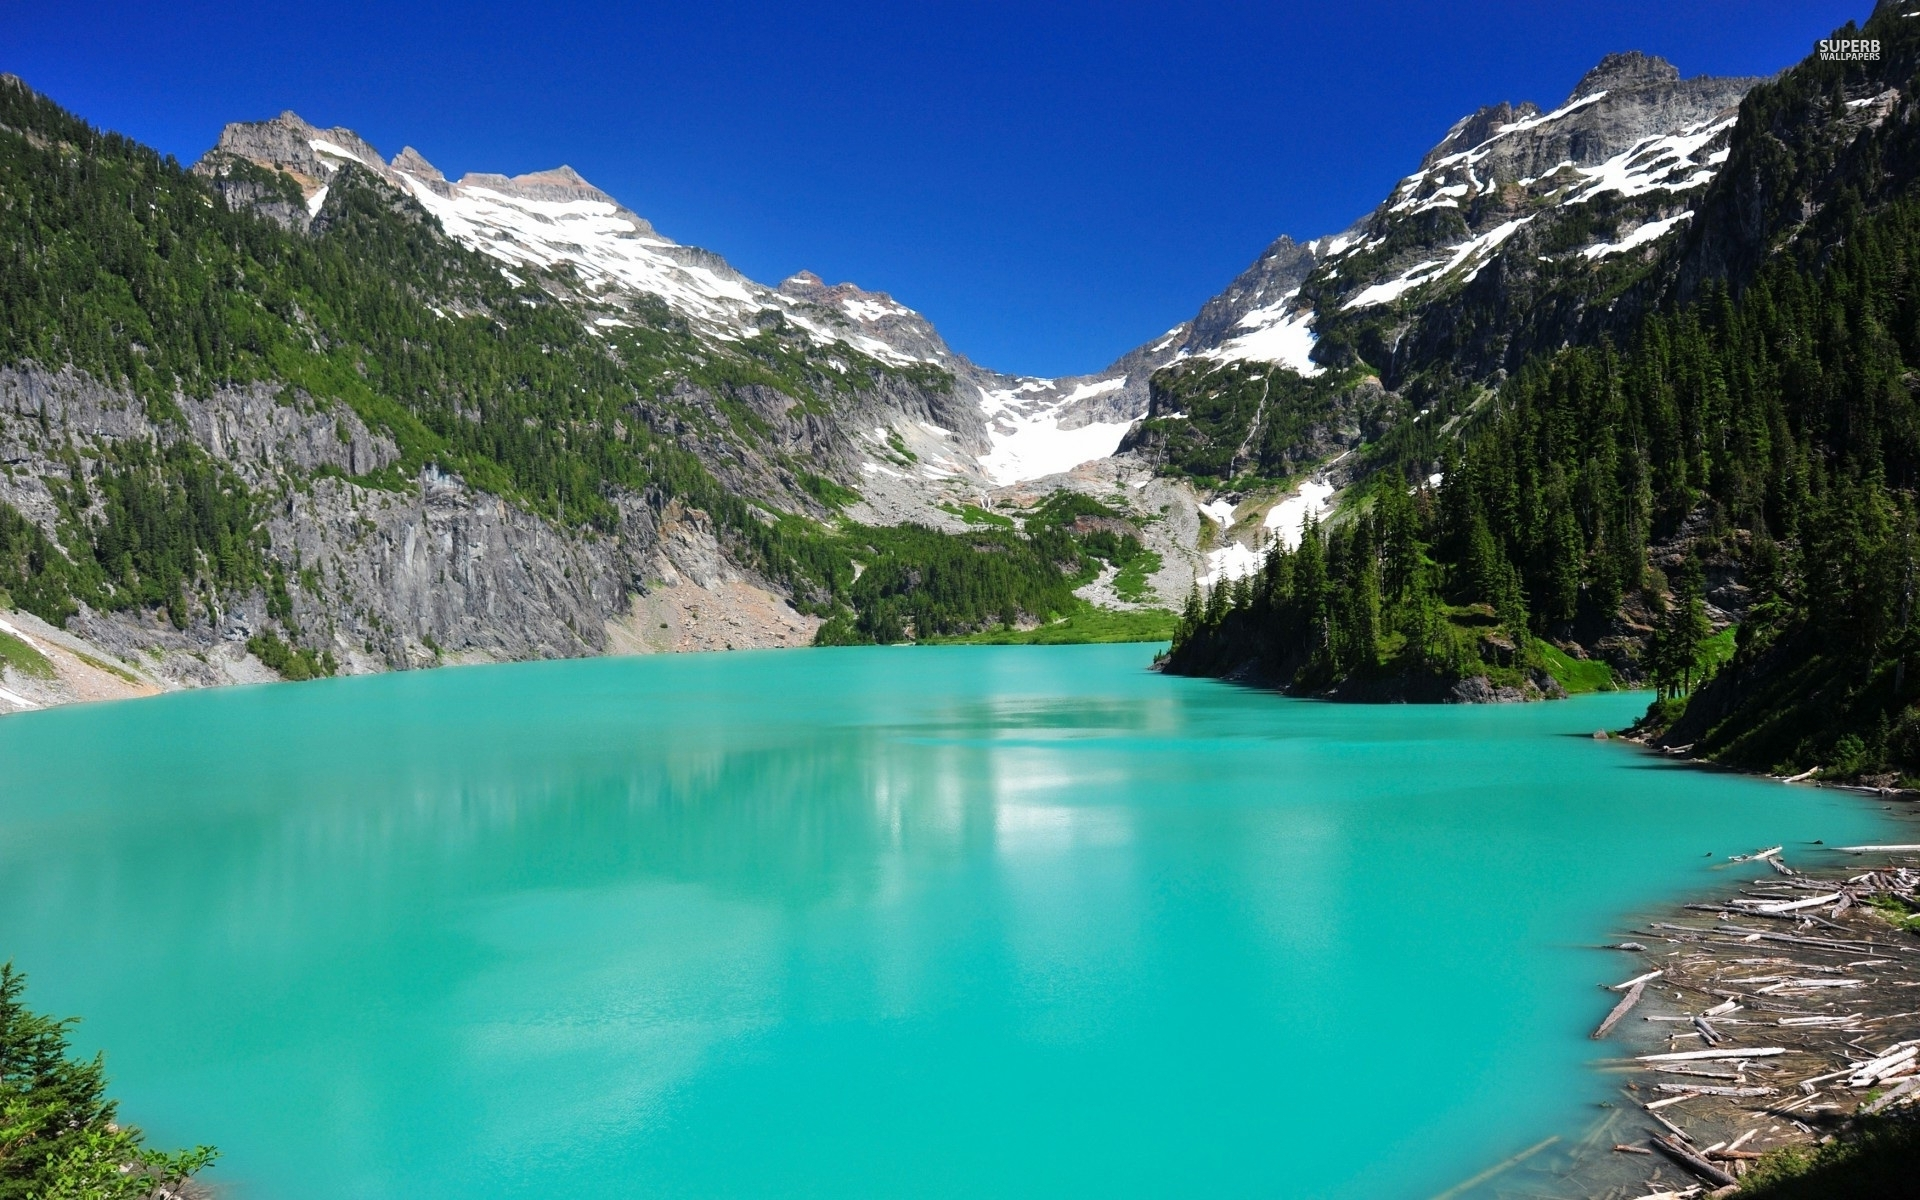 Oasis Wallpaper Iphone 5 Blanca Lake Washington Wallpapers Blanca Lake Washington